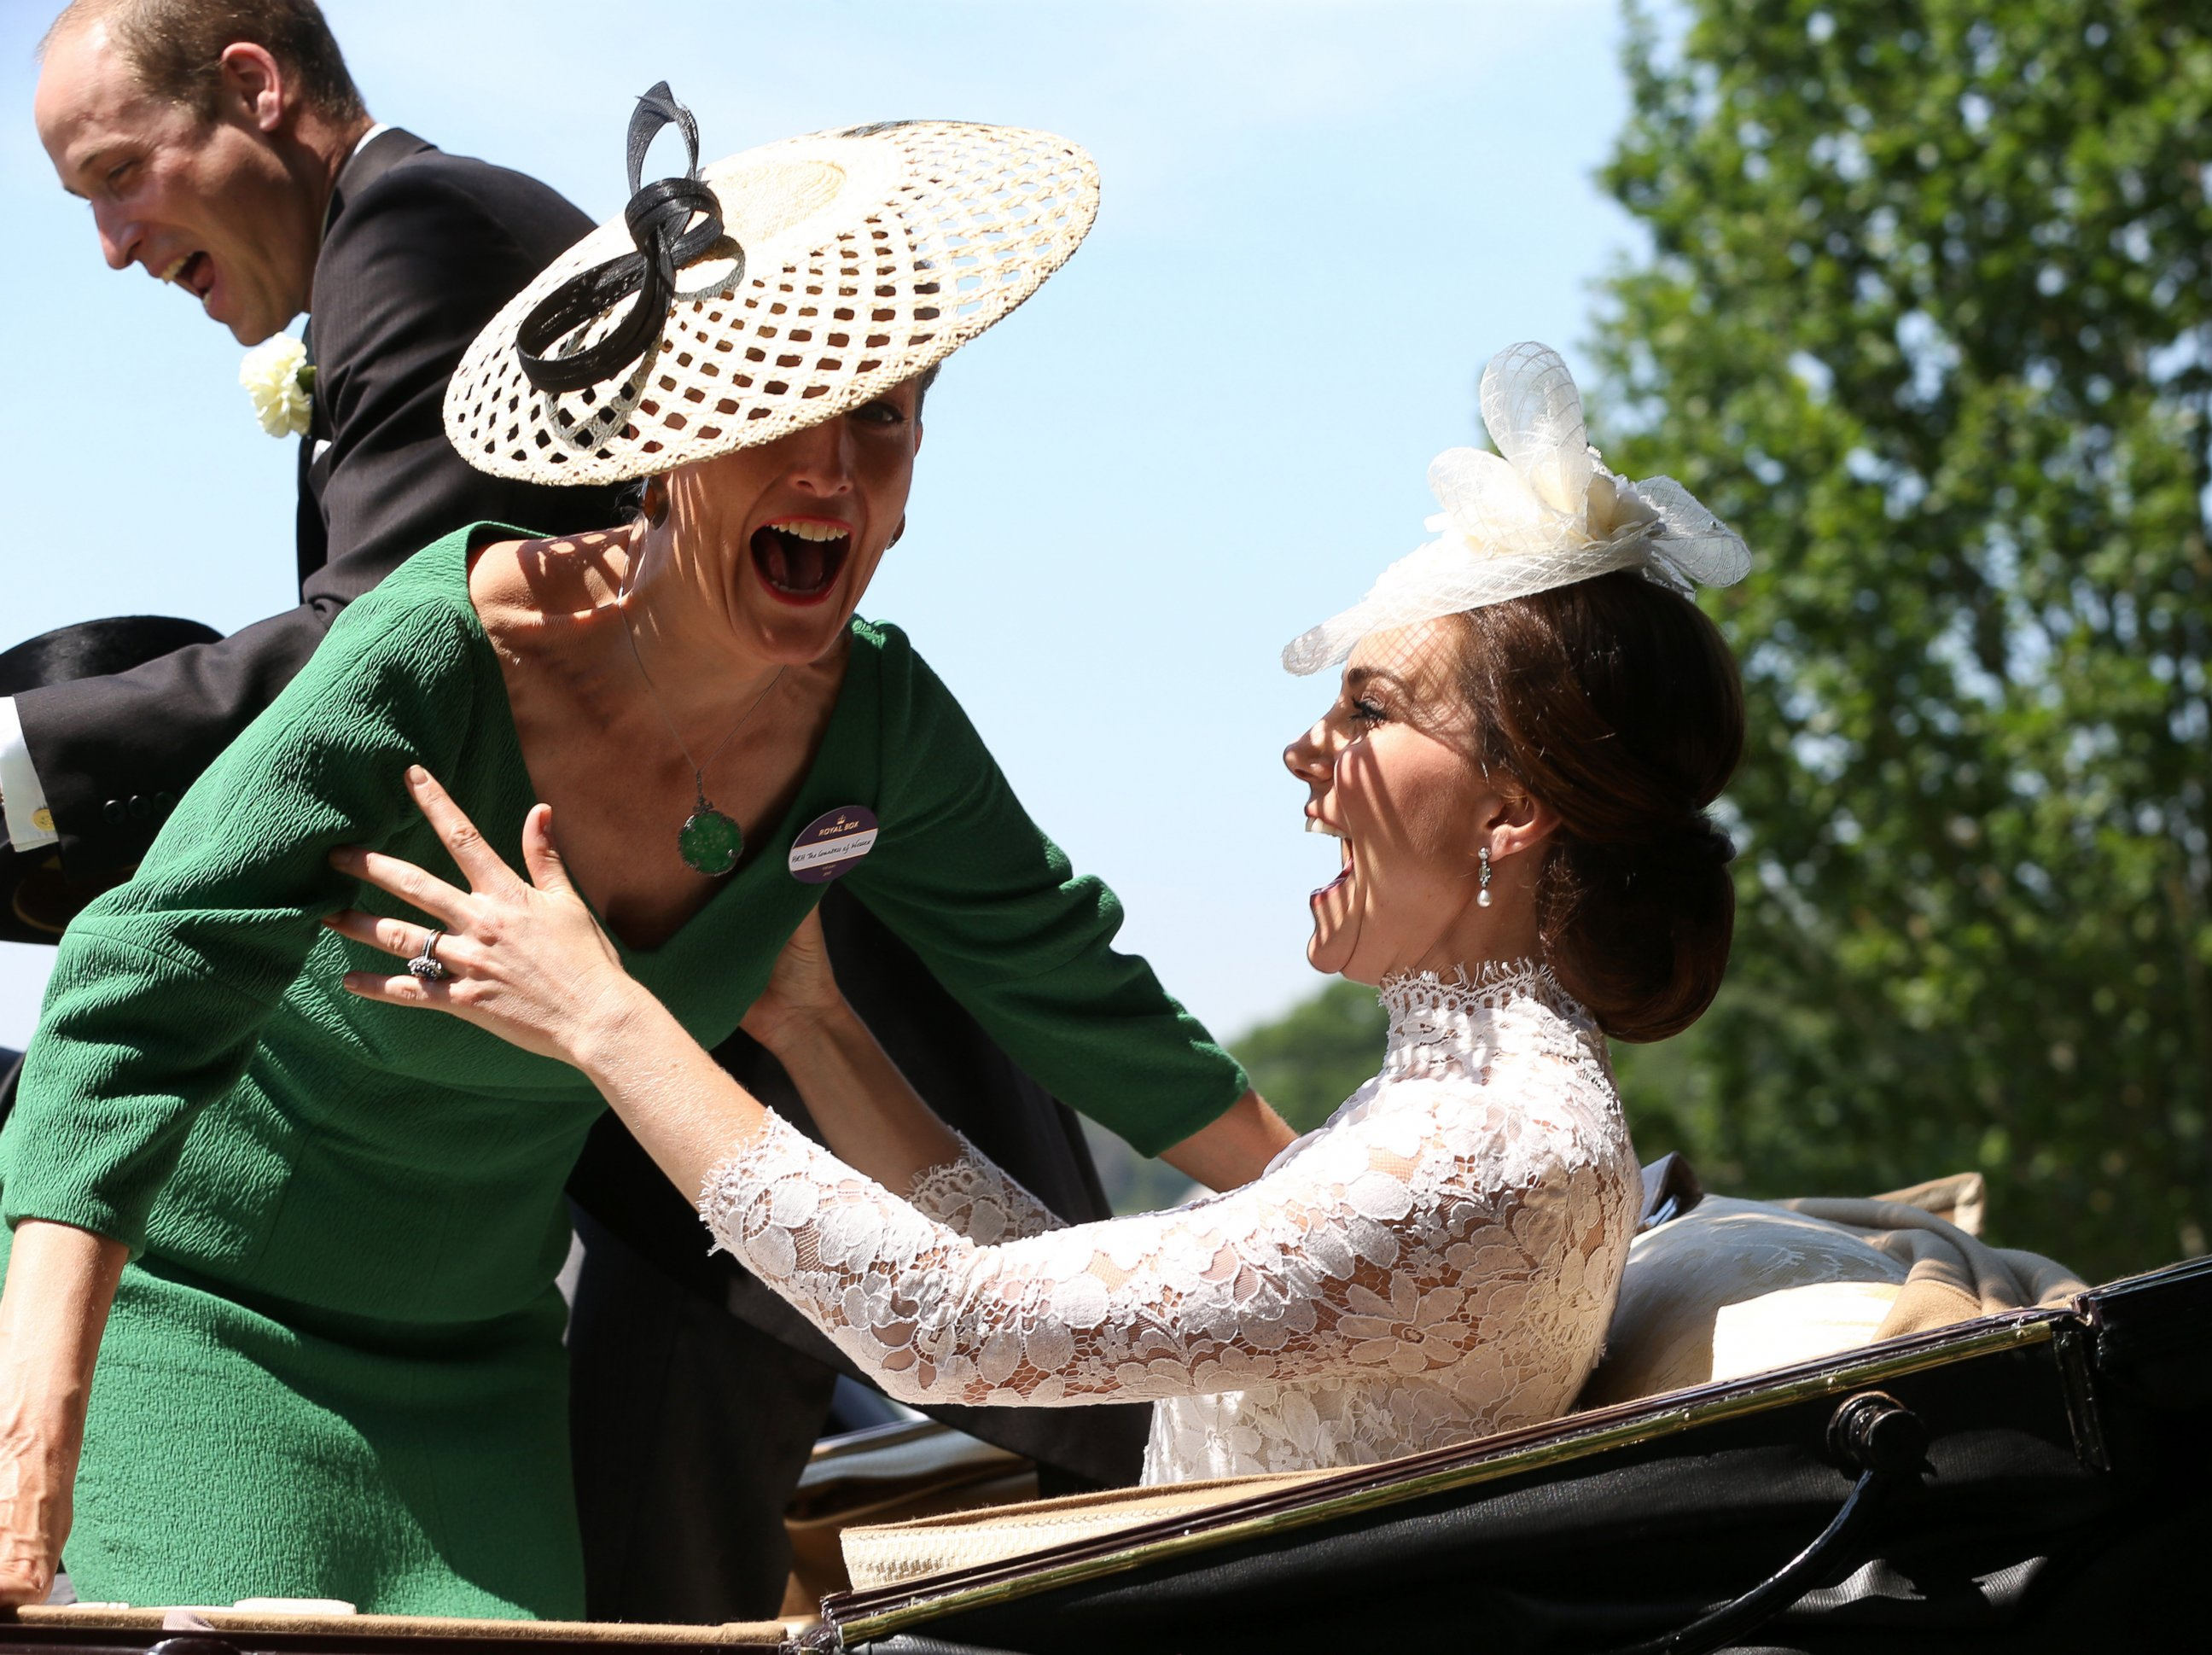 The Countess of Wessex, Sophie, accidentally falls onto Kate, Duchess of Cambridge, at Ascot